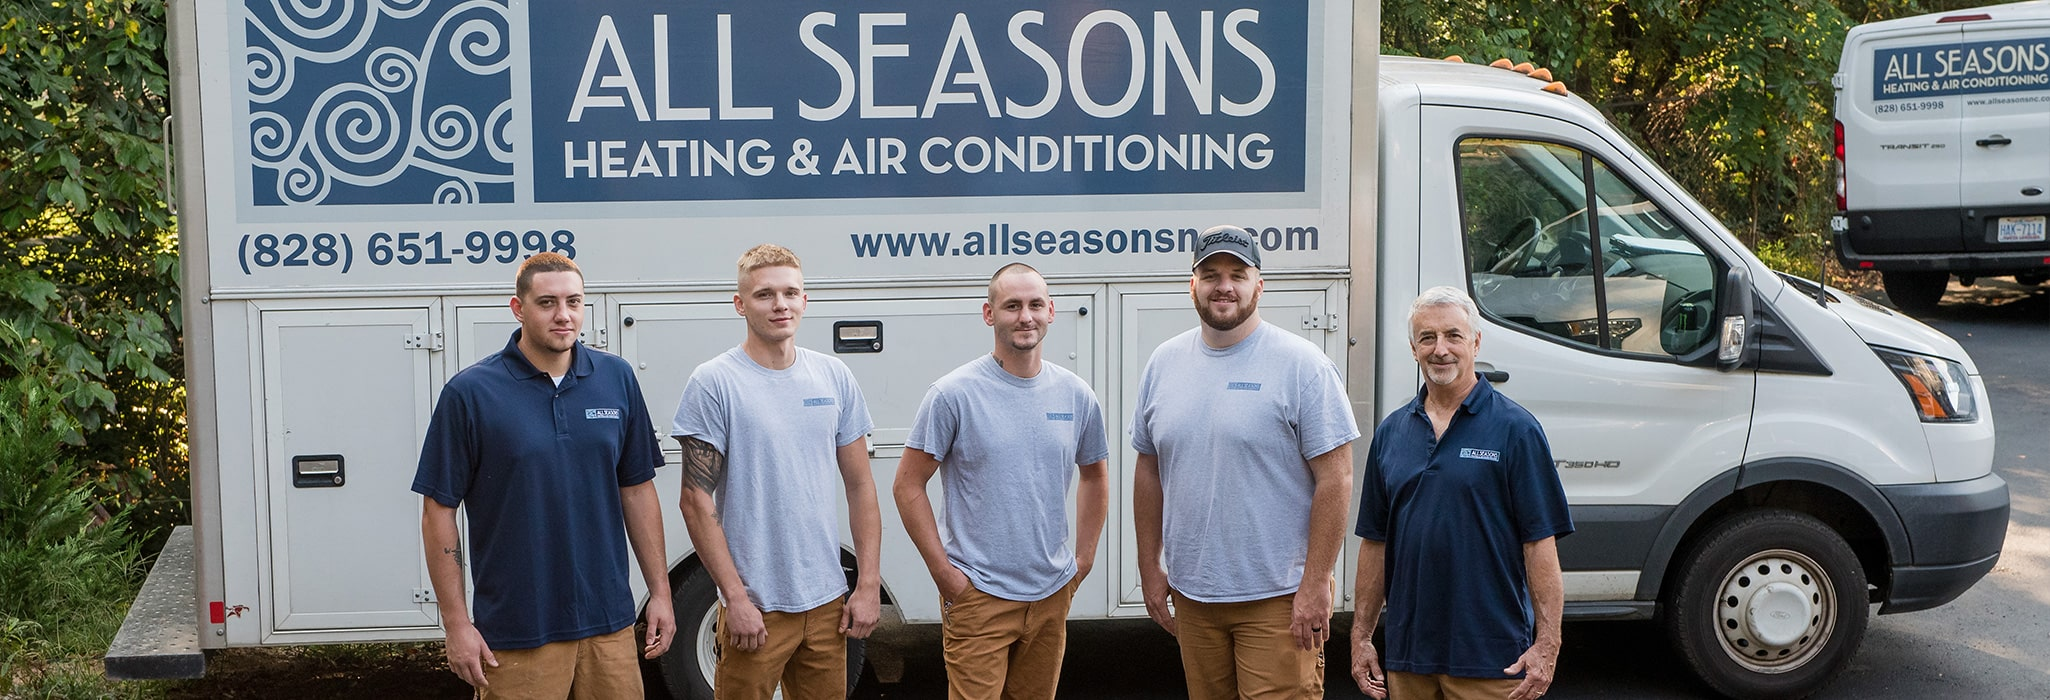 Our outstanding installers and technicians: Aran, Zach, Billy, Cody and Morgan